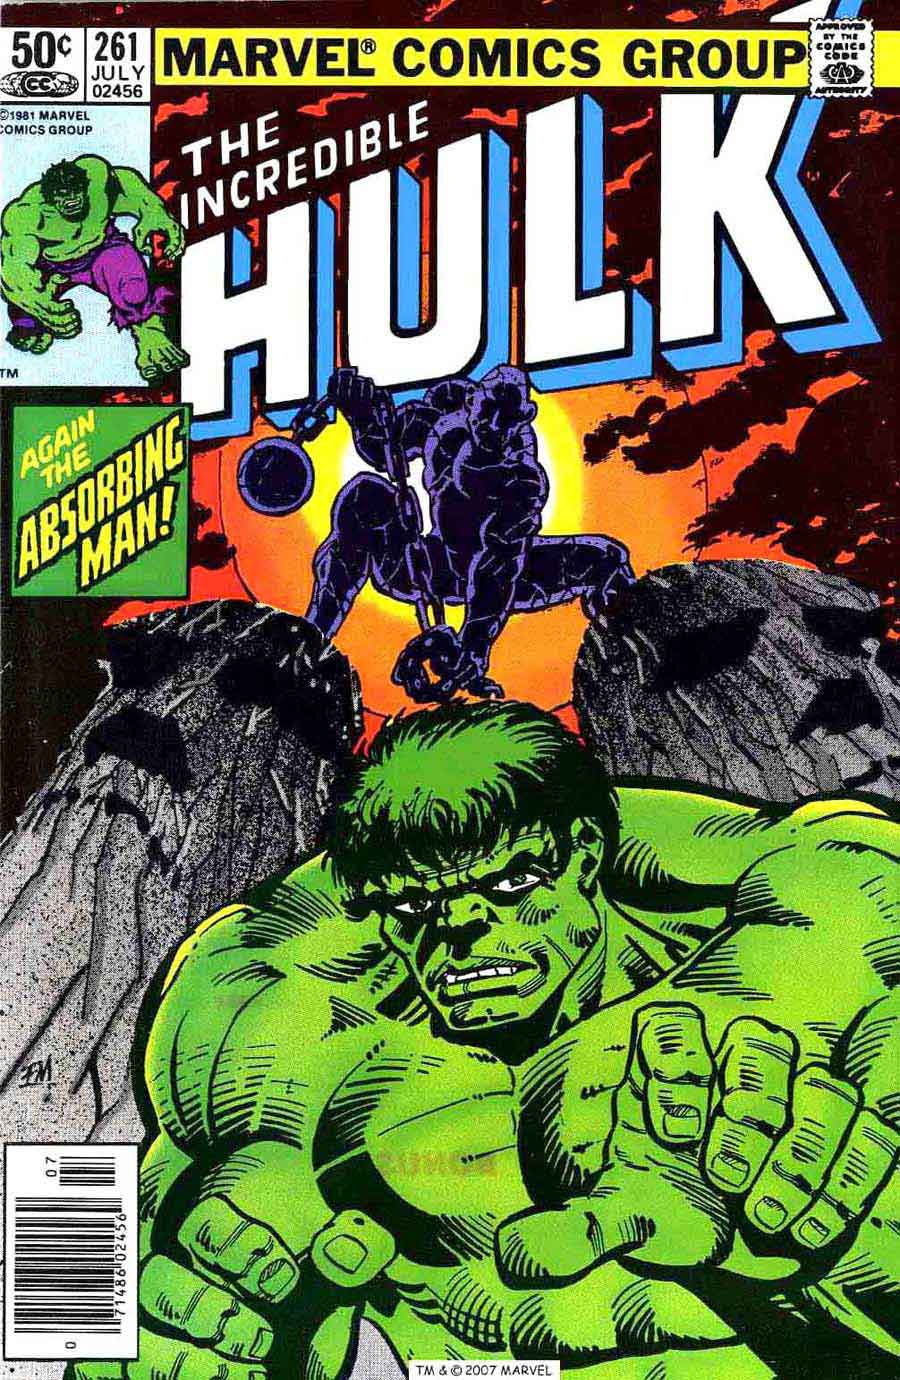 Incredible Hulk v2 #261 marvel comic book cover art by Frank Miller